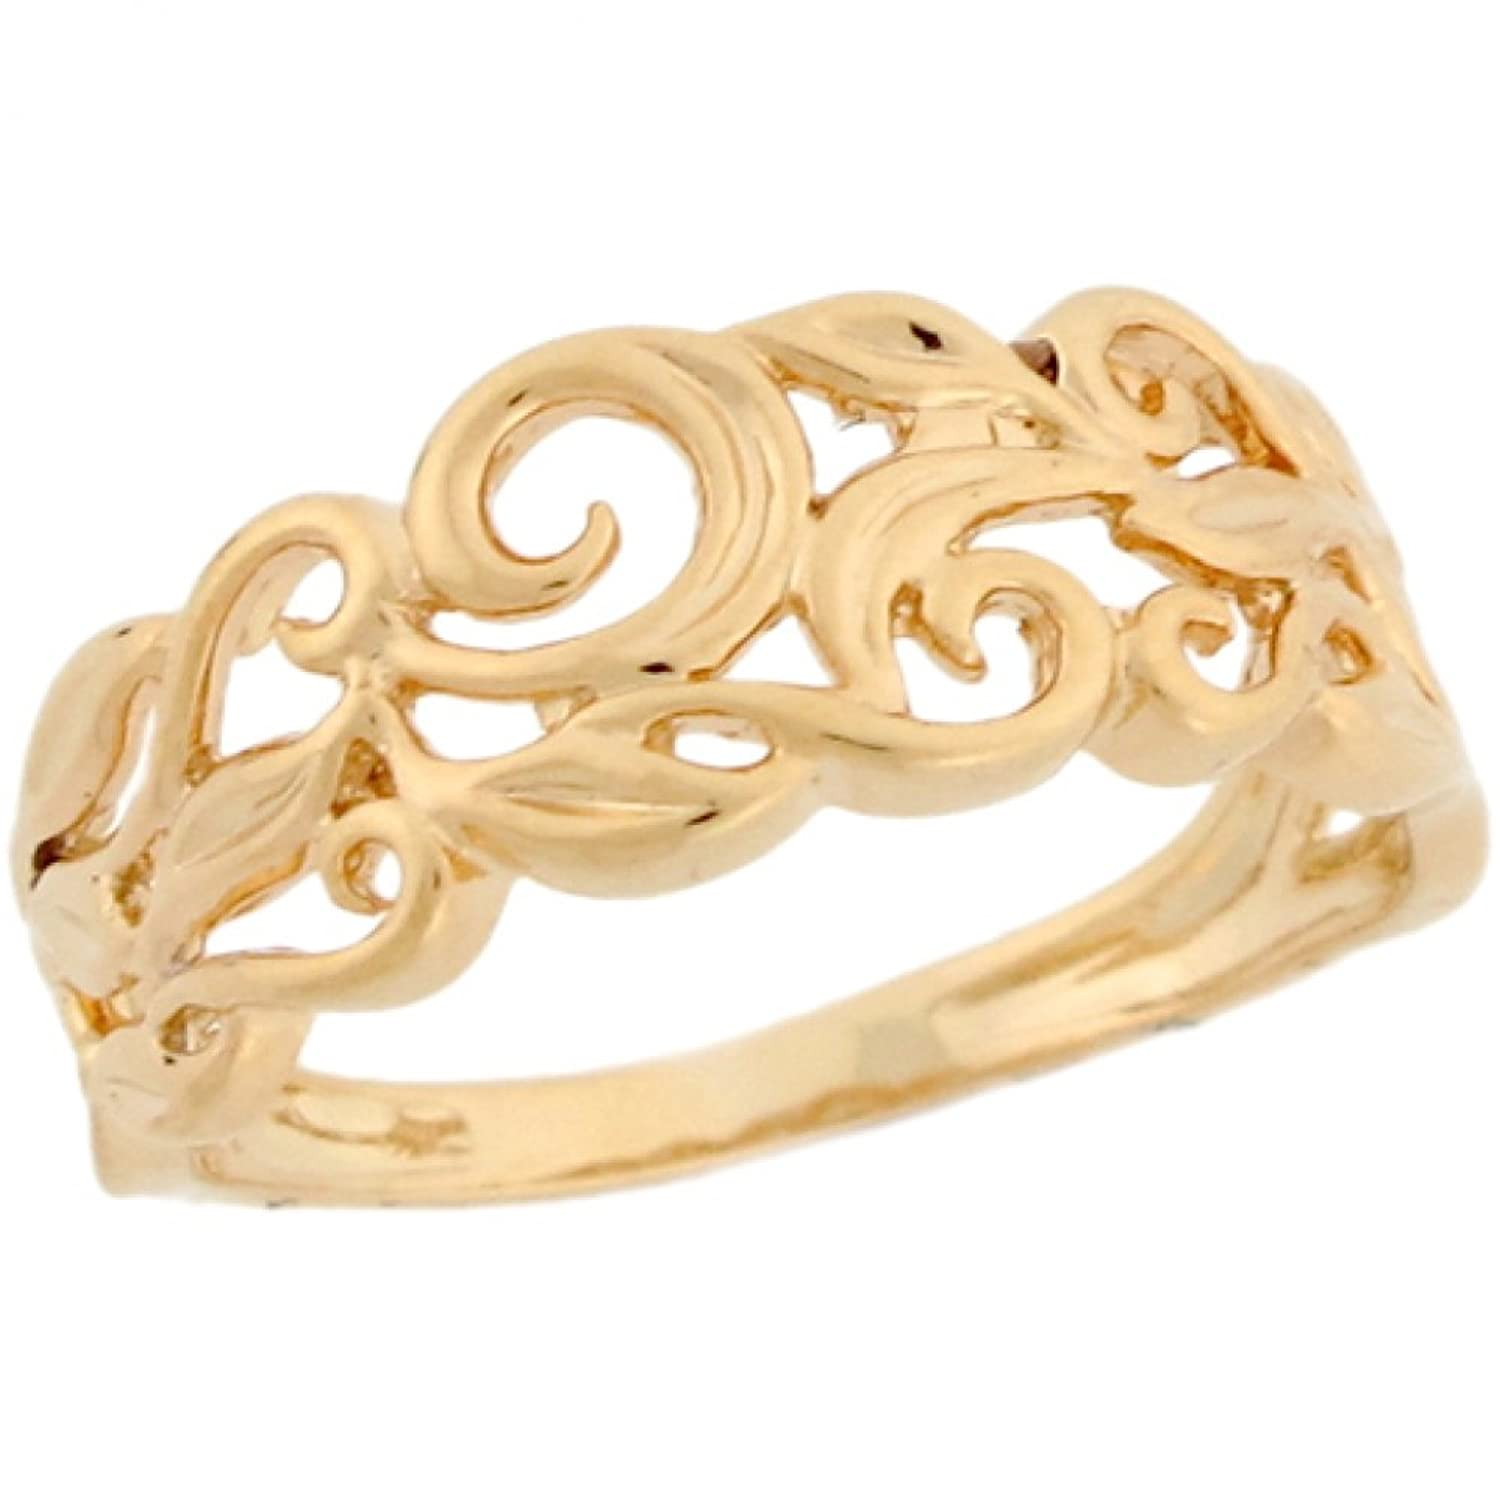 rings eccosa en price products jewellery designs new diamonds for fashion women beautiful gold